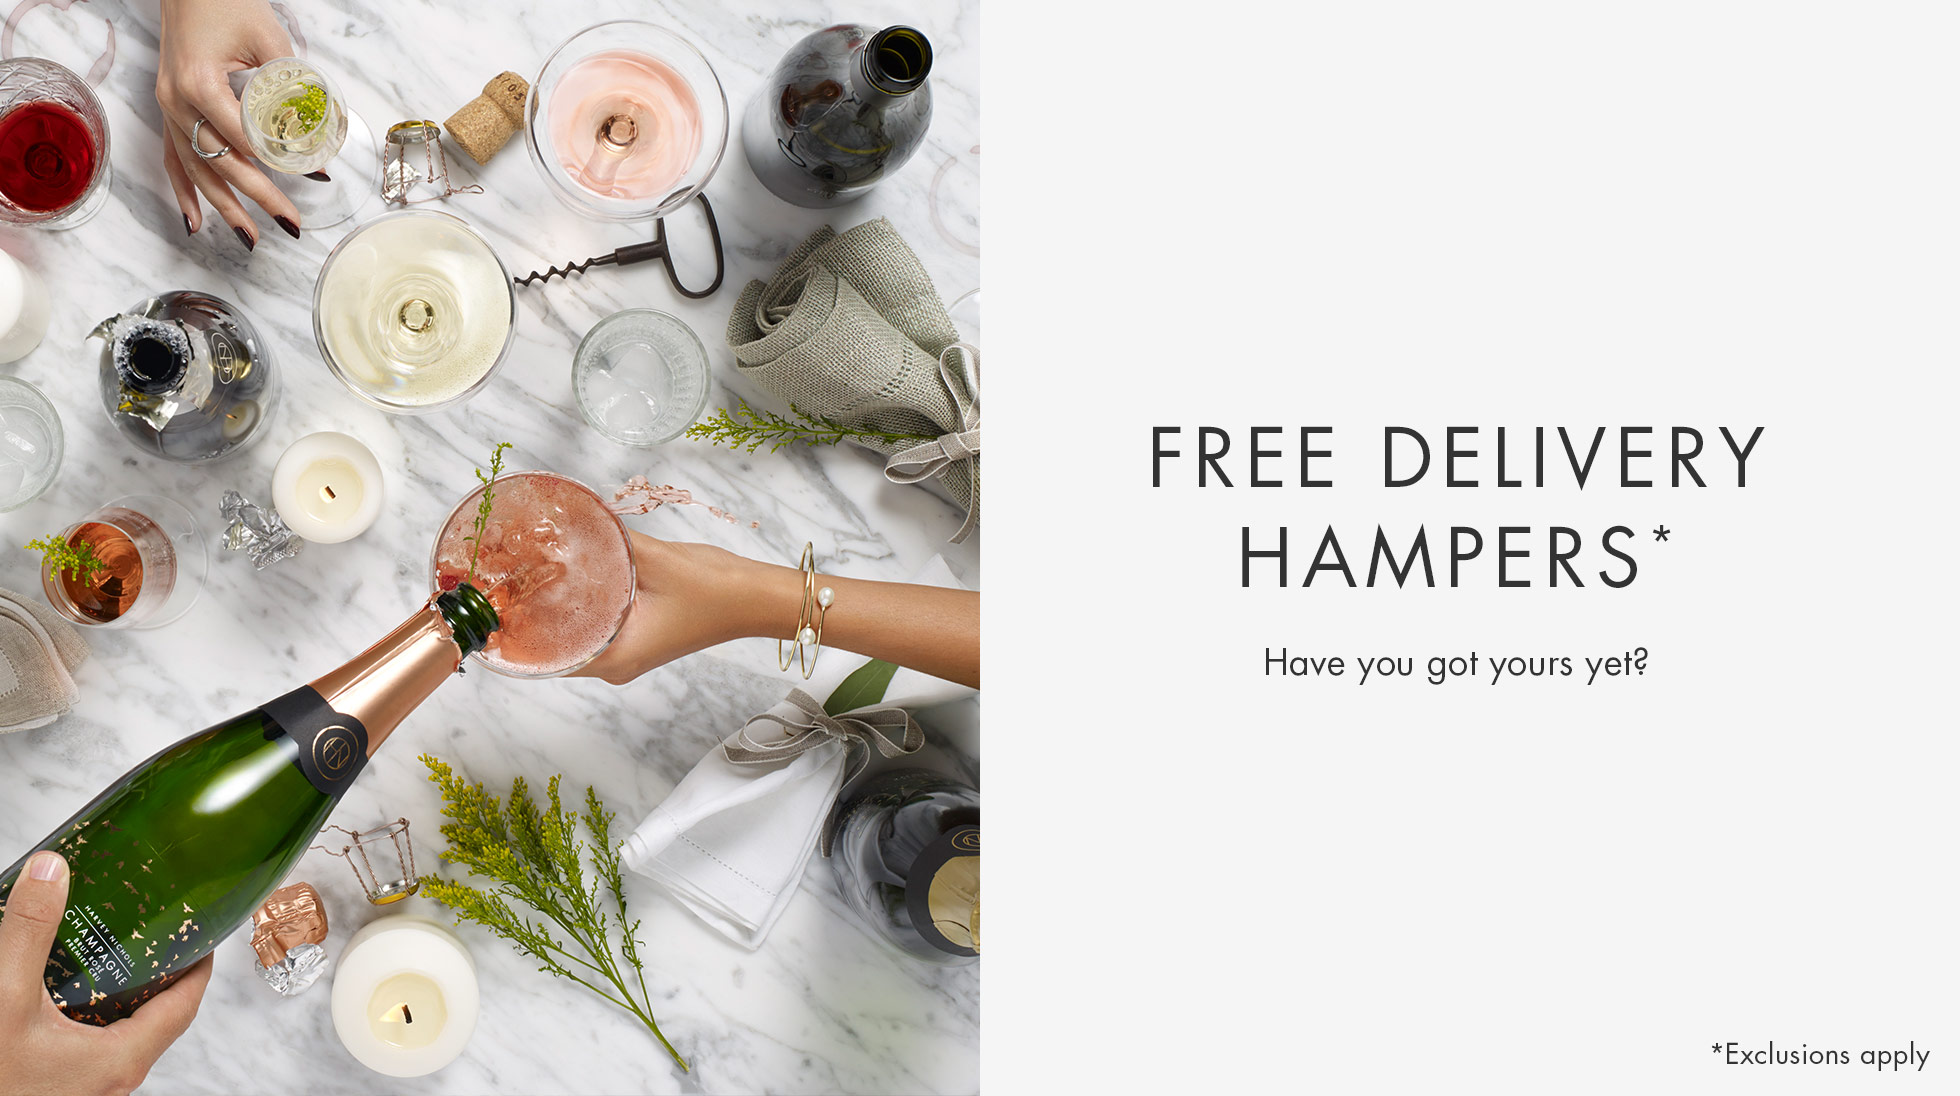 FREE DELIVERY HAMPERS